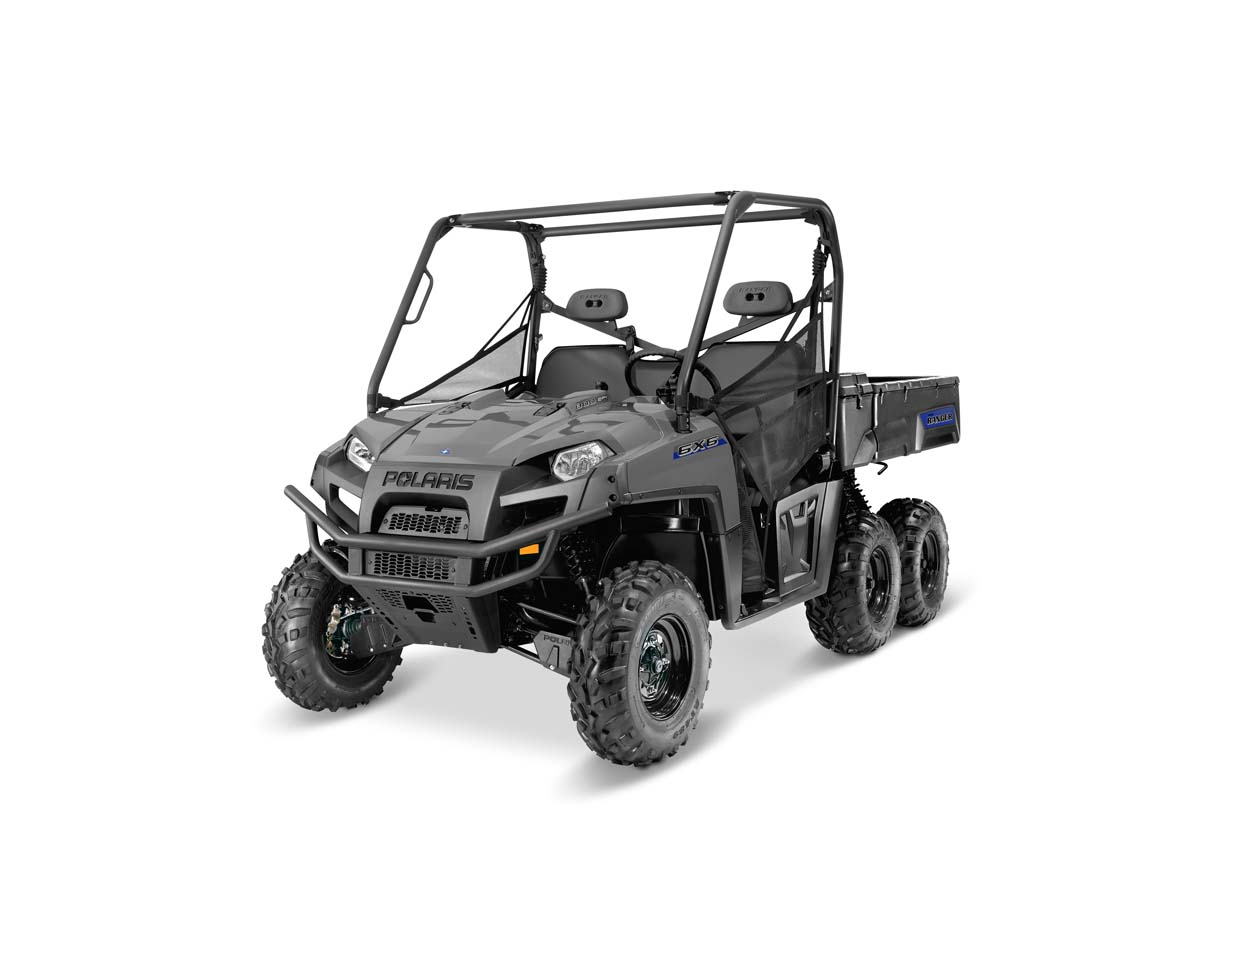 The Hard Working Ranger Xp 1000 Eps Ranch Edition And Industry S First Gas Ed Utv With Heating Ventilation Air Conditioning Hvac On